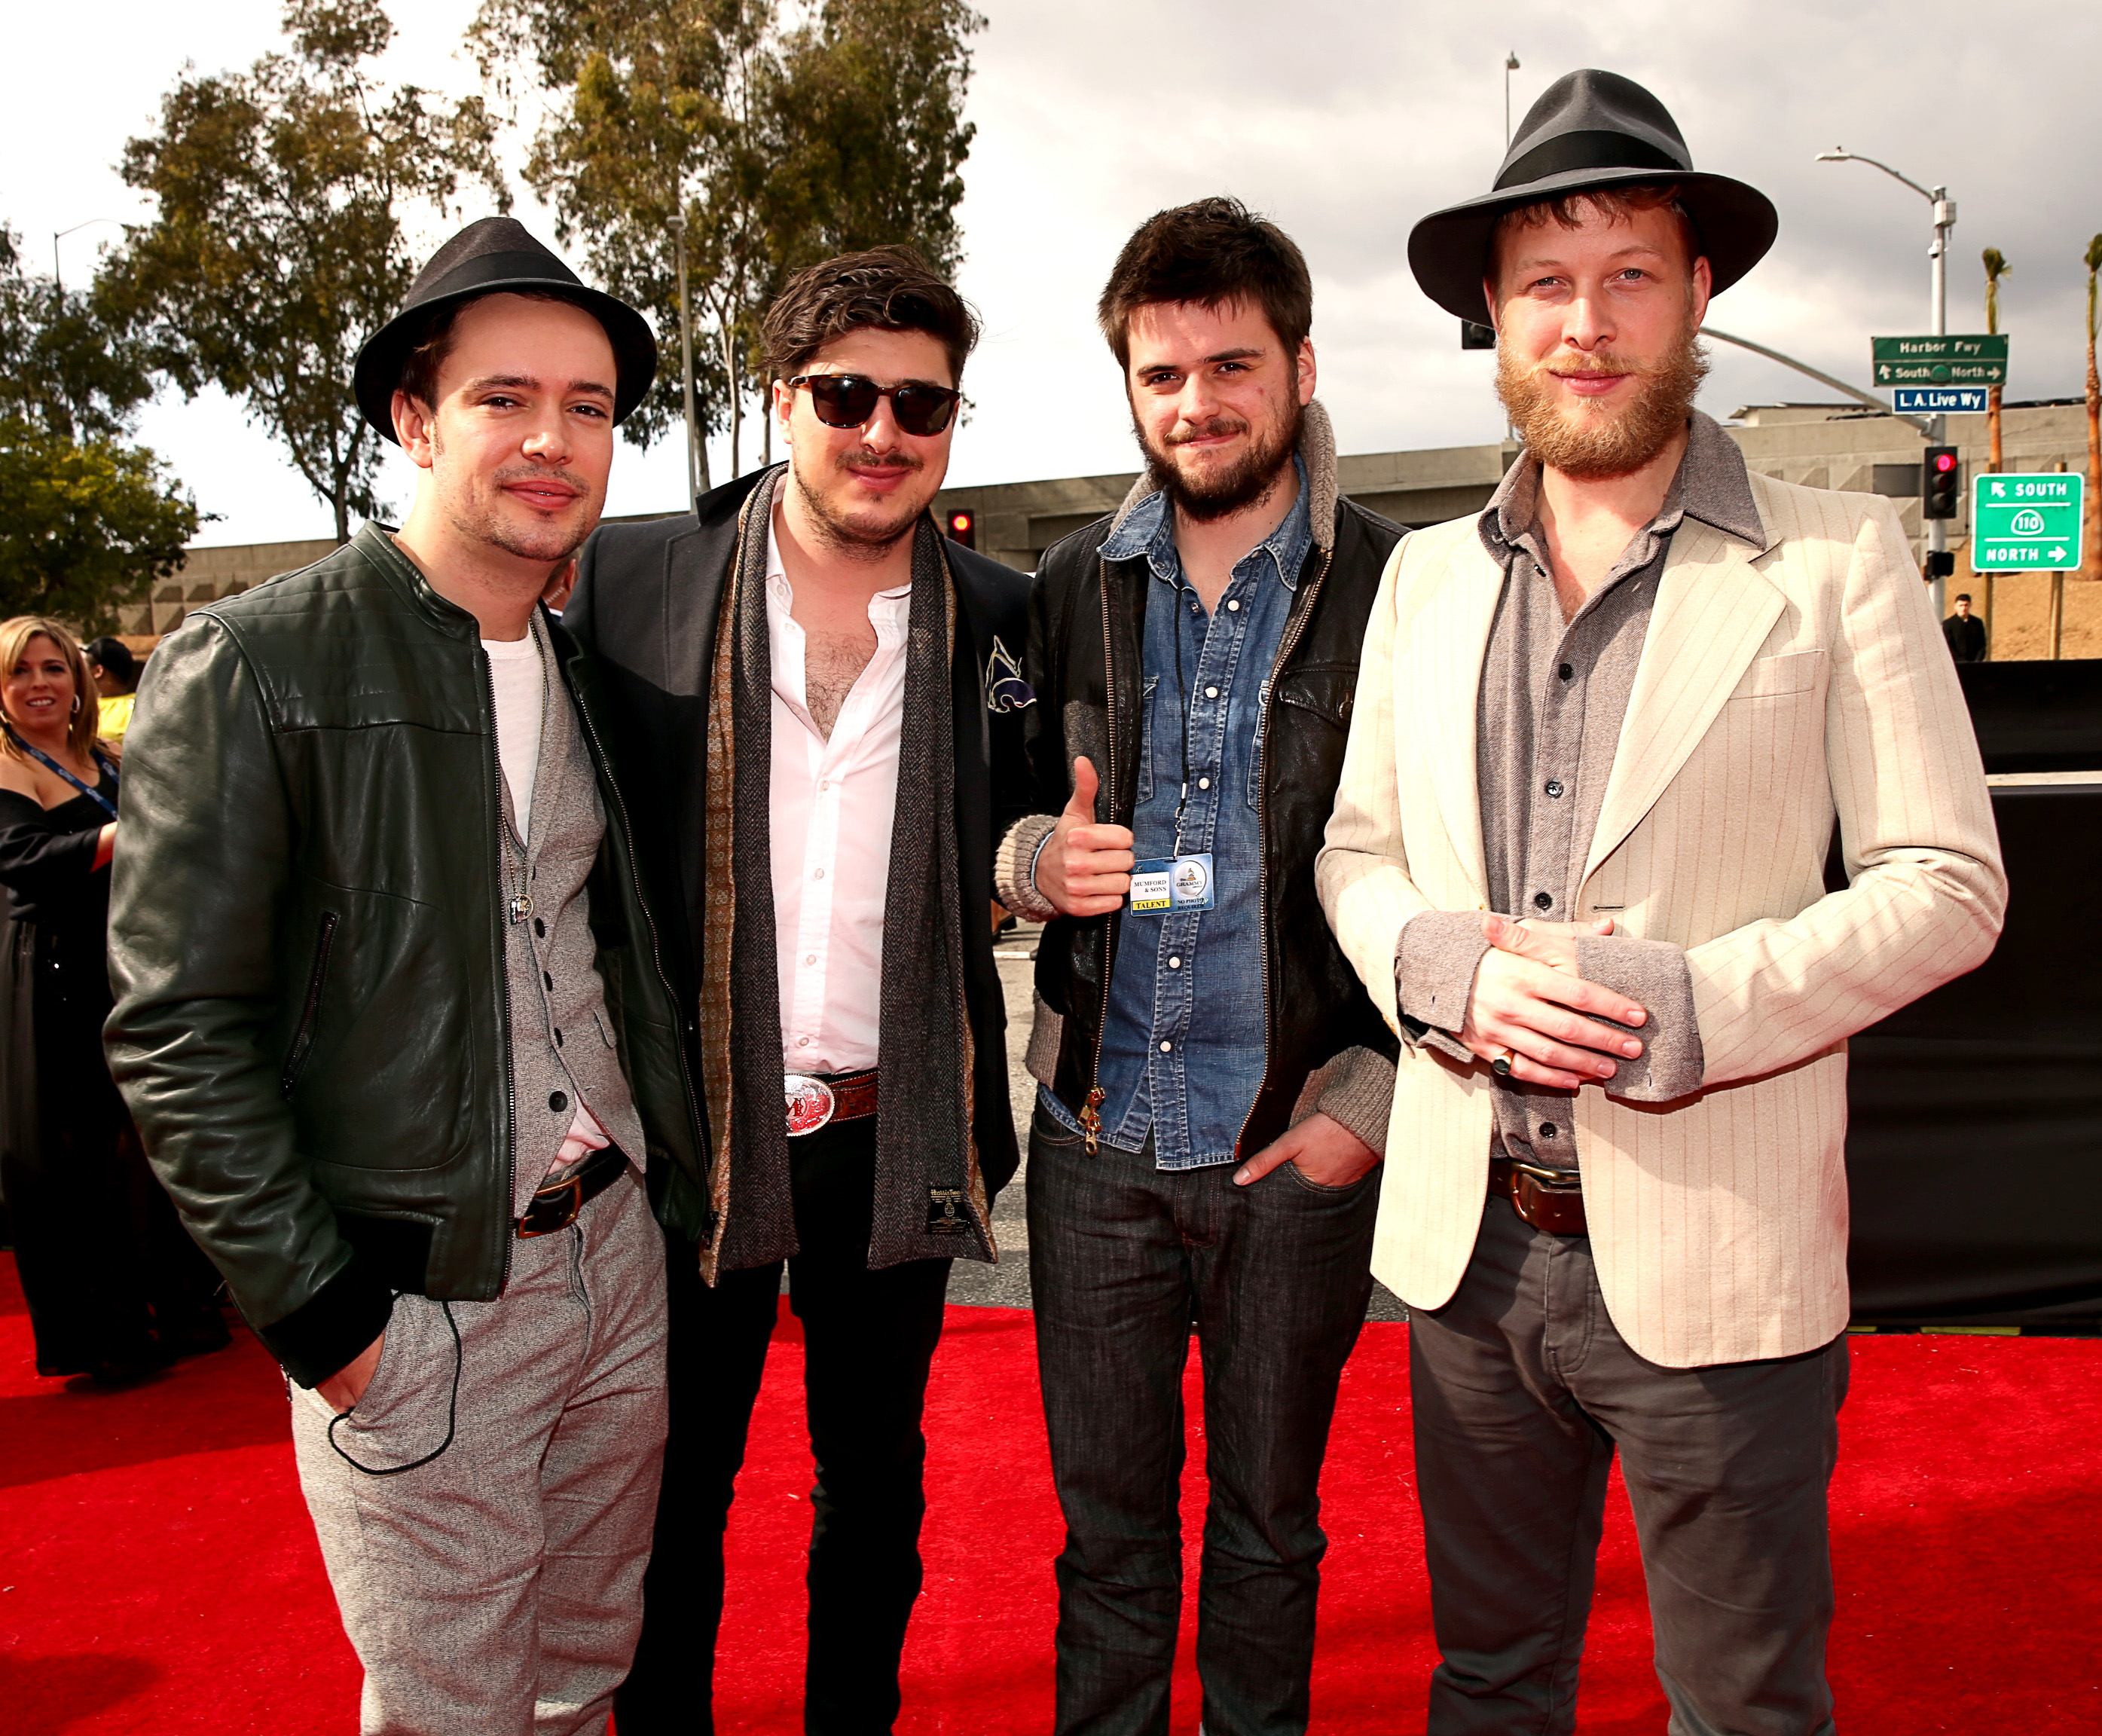 Marcus Mumford, Ben Lovett, Winston Marshall, and Ted Dwane hit the red carpet for the Grammys.